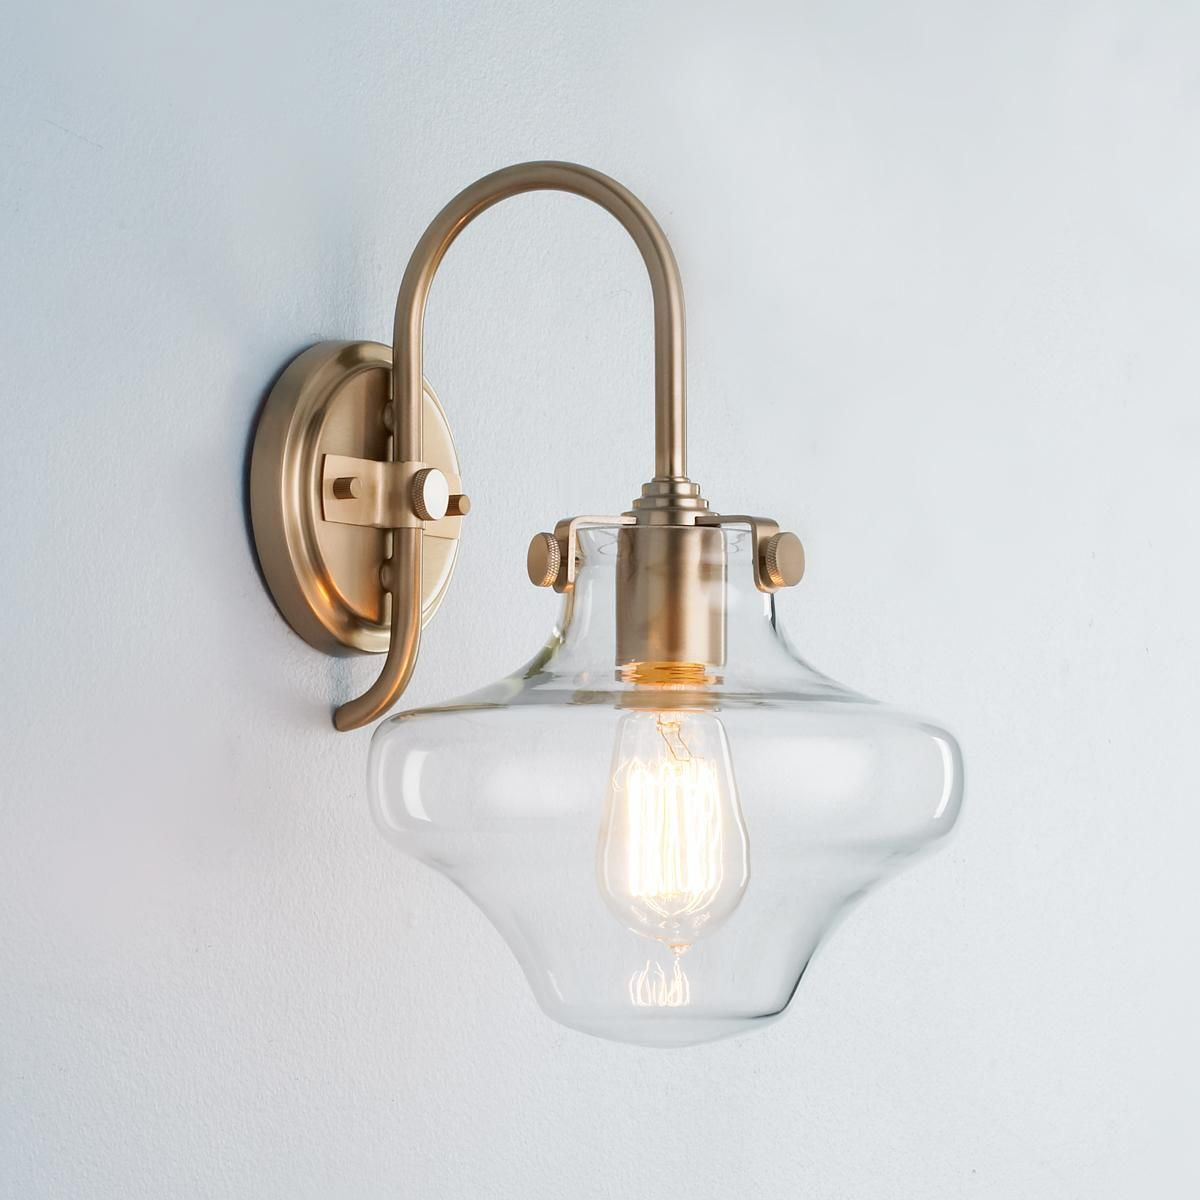 Bedroom Reading Wall Sconce